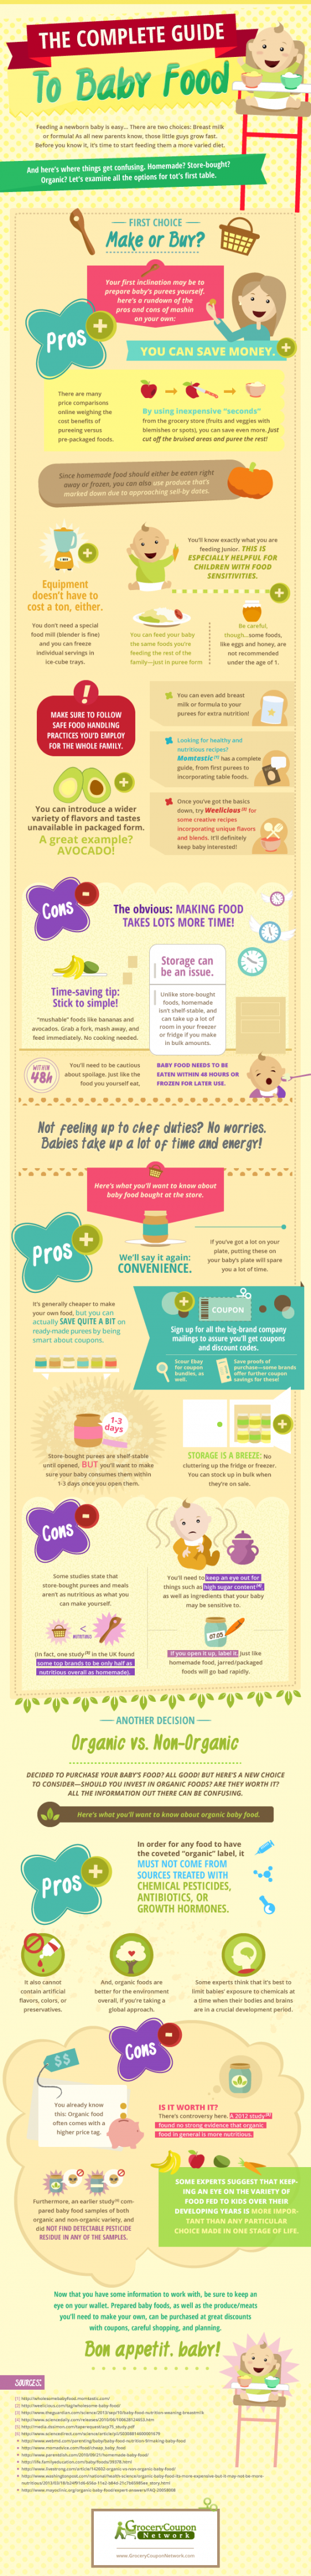 The Complete Guide to Baby Food